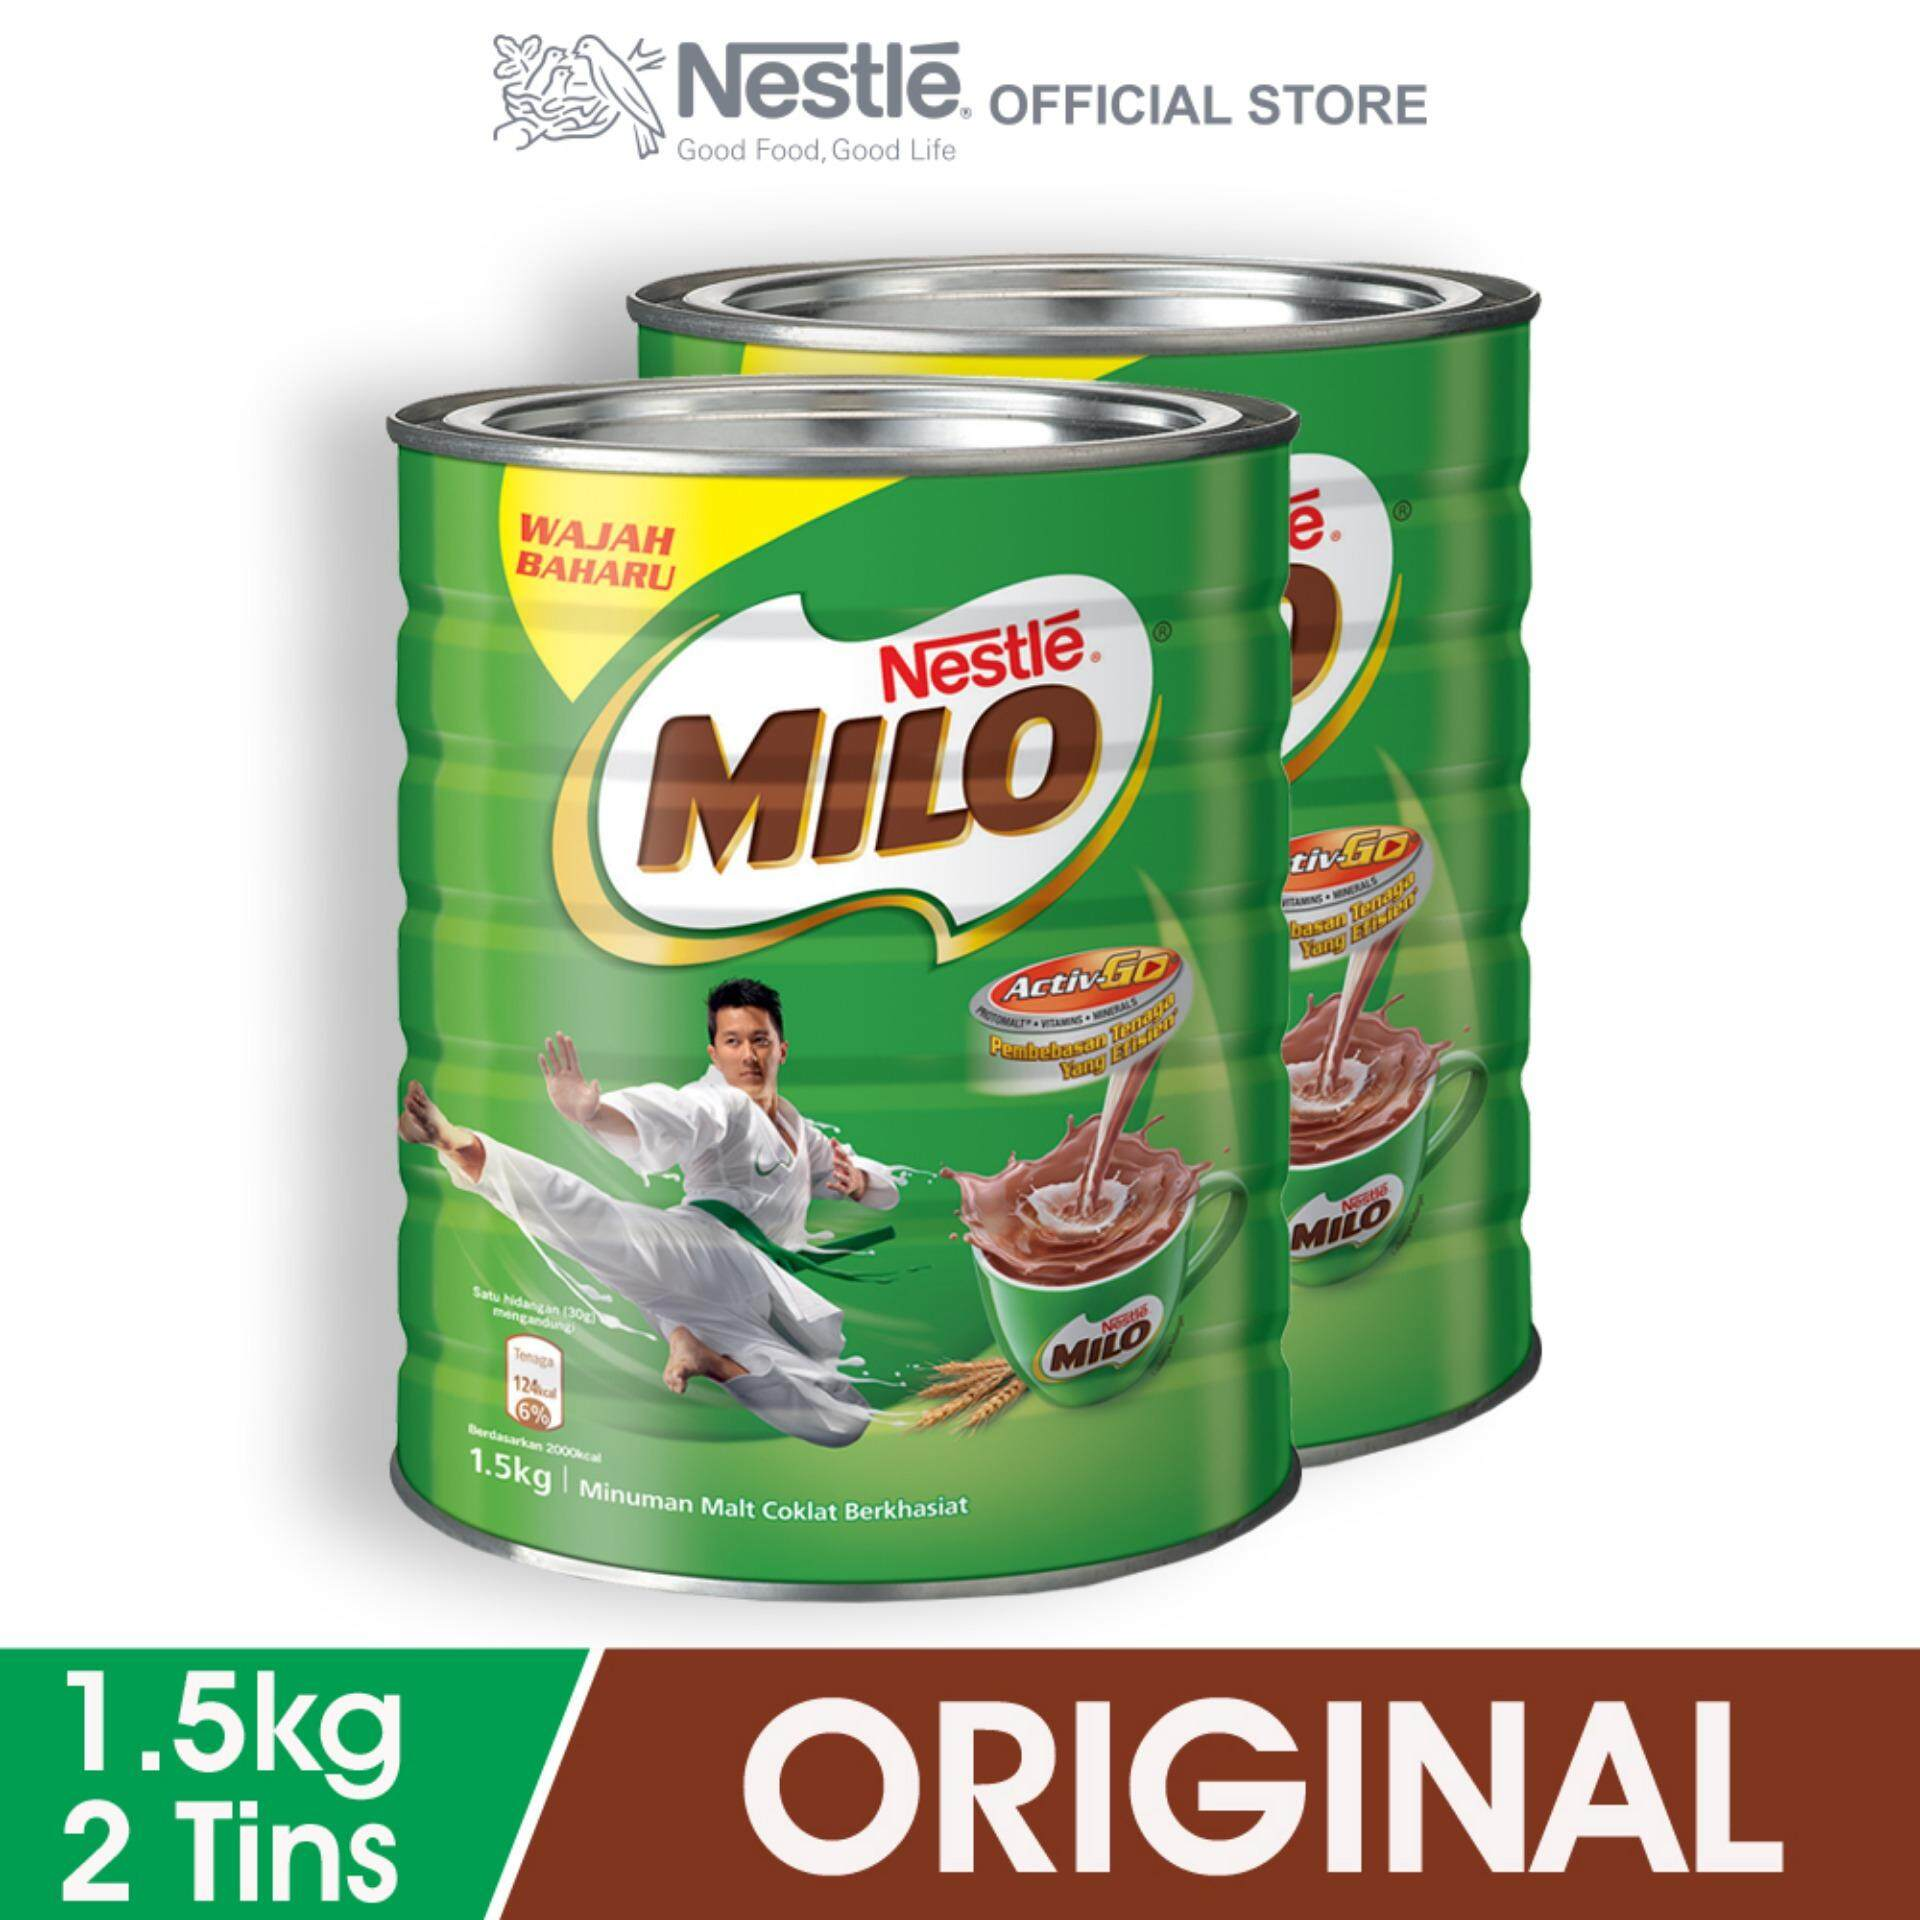 Nestle Products With Best Price At Lazada Malaysia Susu Bear Breand Plus Kurma Nestl Milo Activ Go Chocolate Malt Powder Tin 15kg X2 Tins